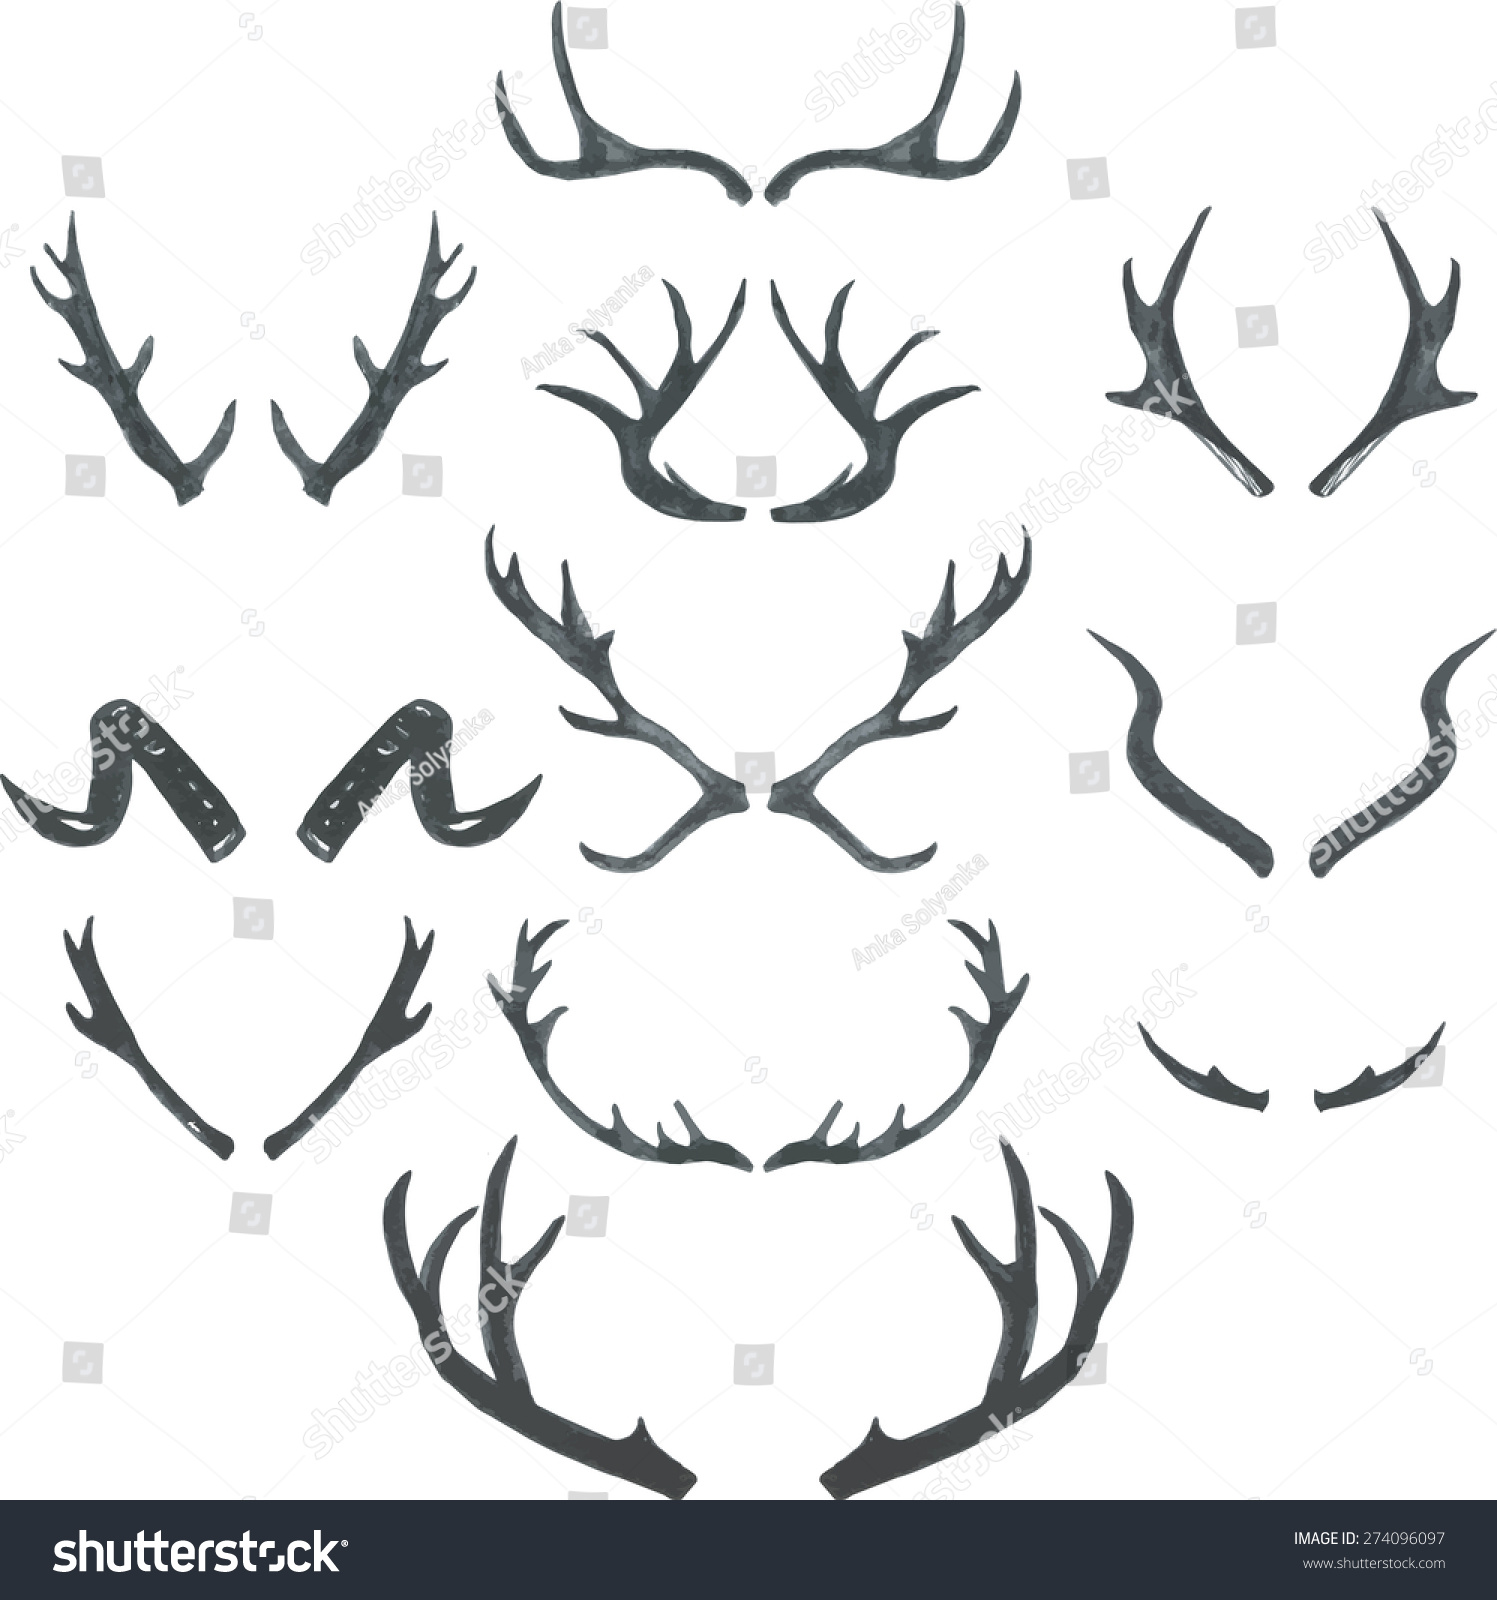 deer antlers drawing easy - photo #45